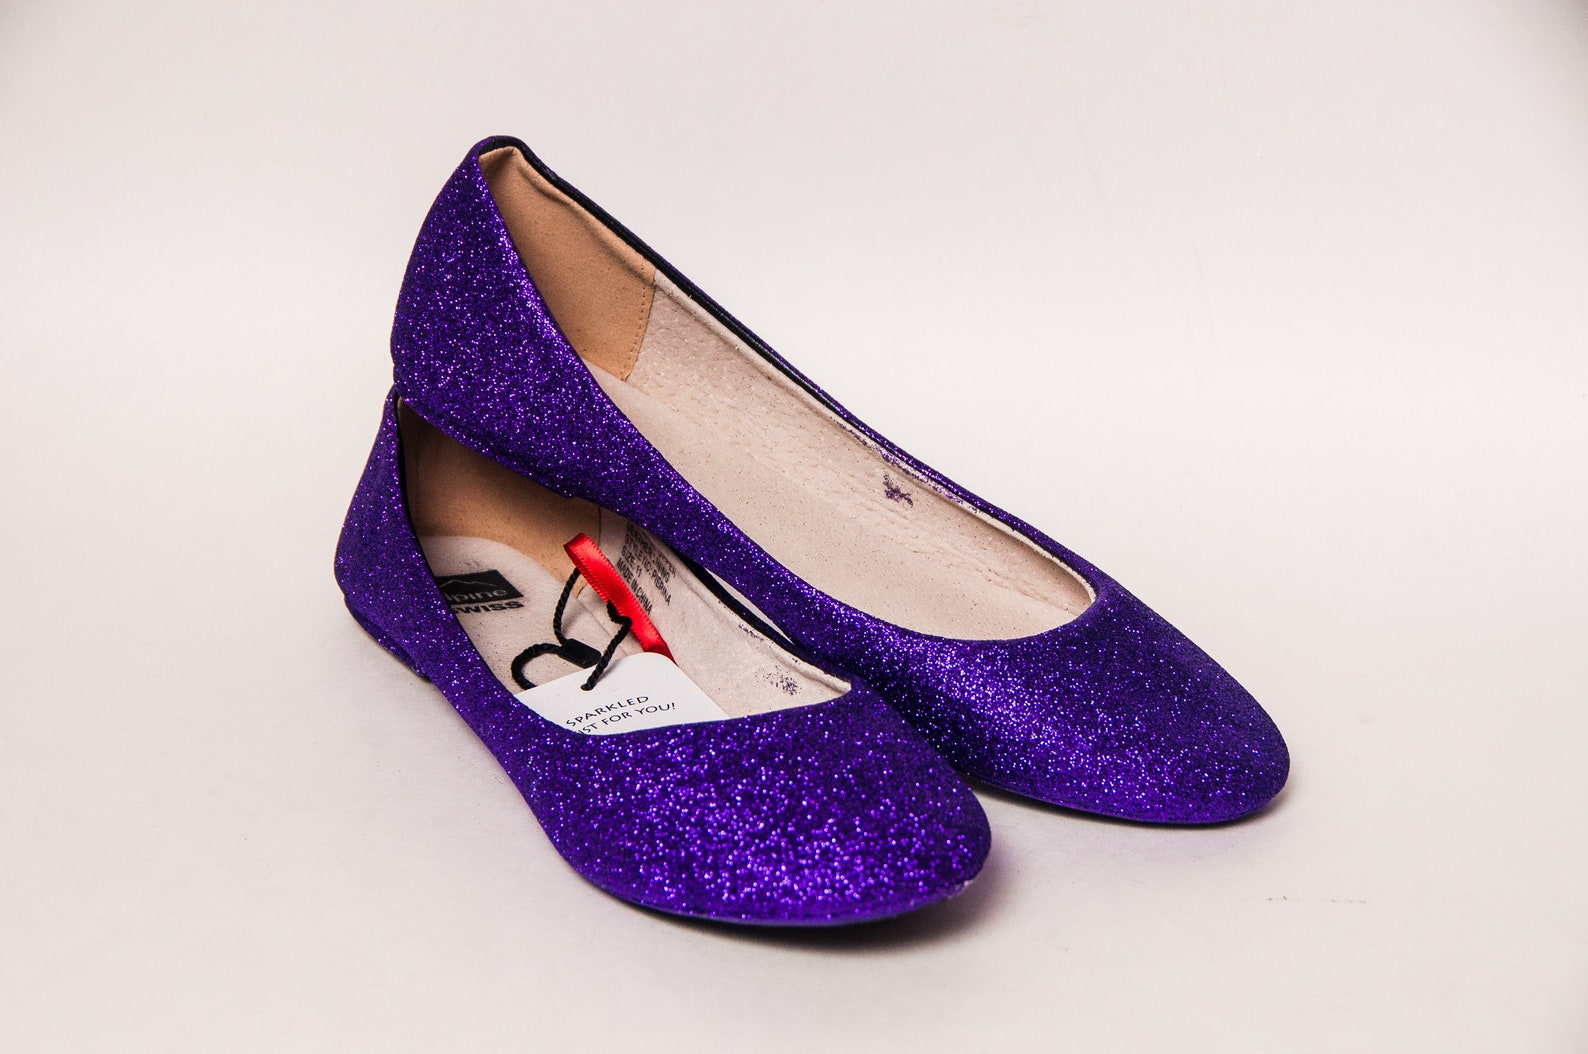 ready 2 ship - size 11 purple passion ballet flats slippers shoes